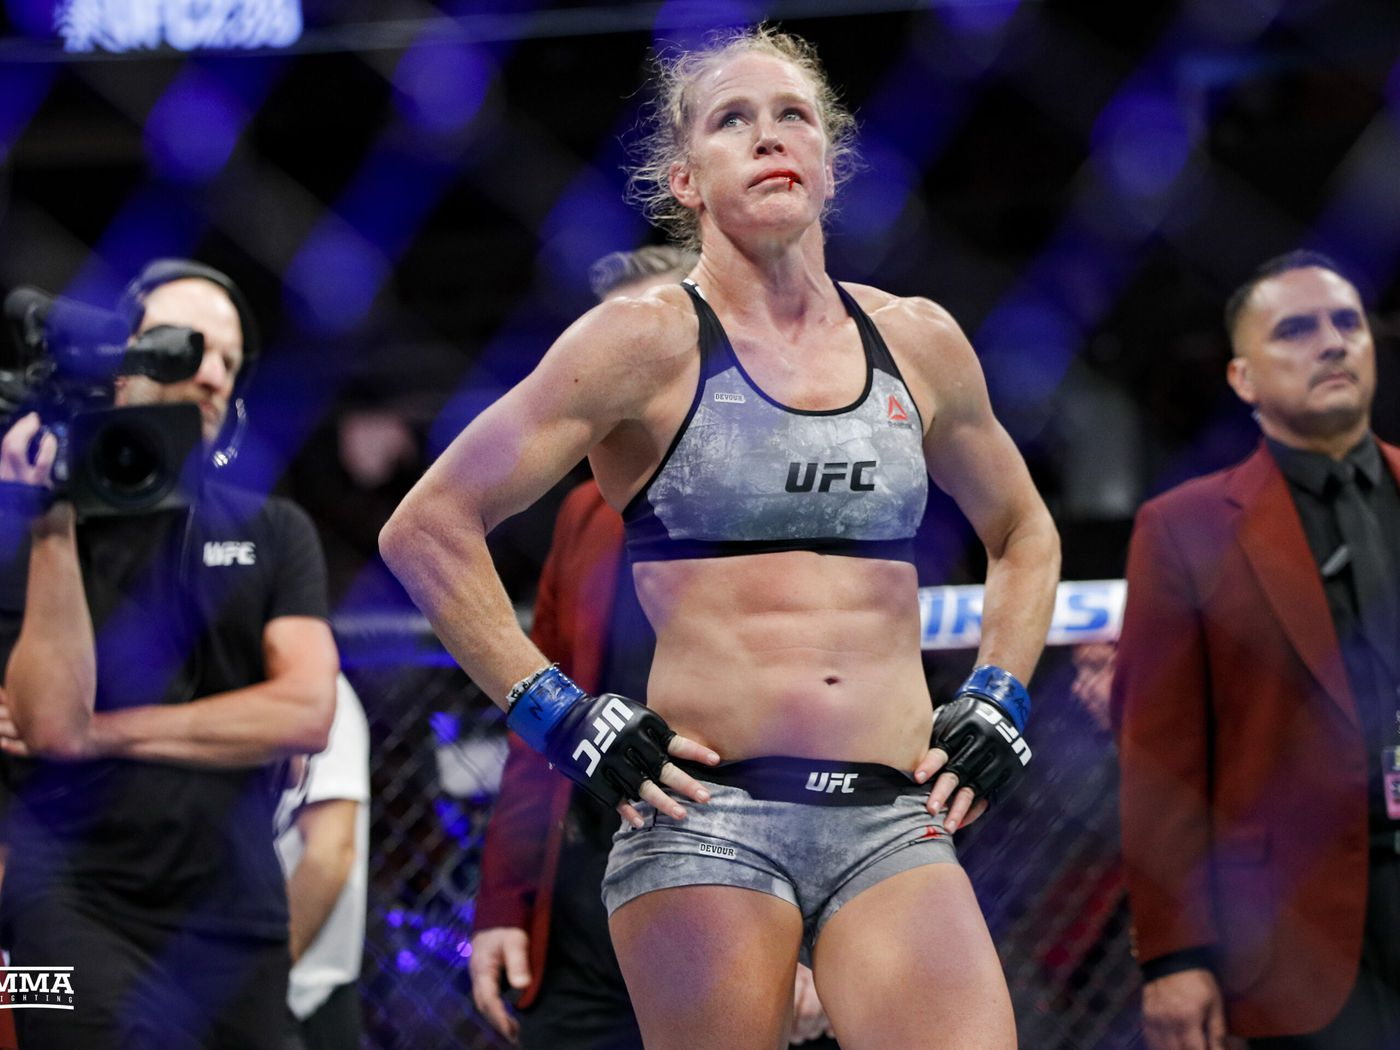 Mike Winkeljohn: Holly Holm 'exactly the opposite' from Ronda Rousey after suffering KO loss - MMA Fighting